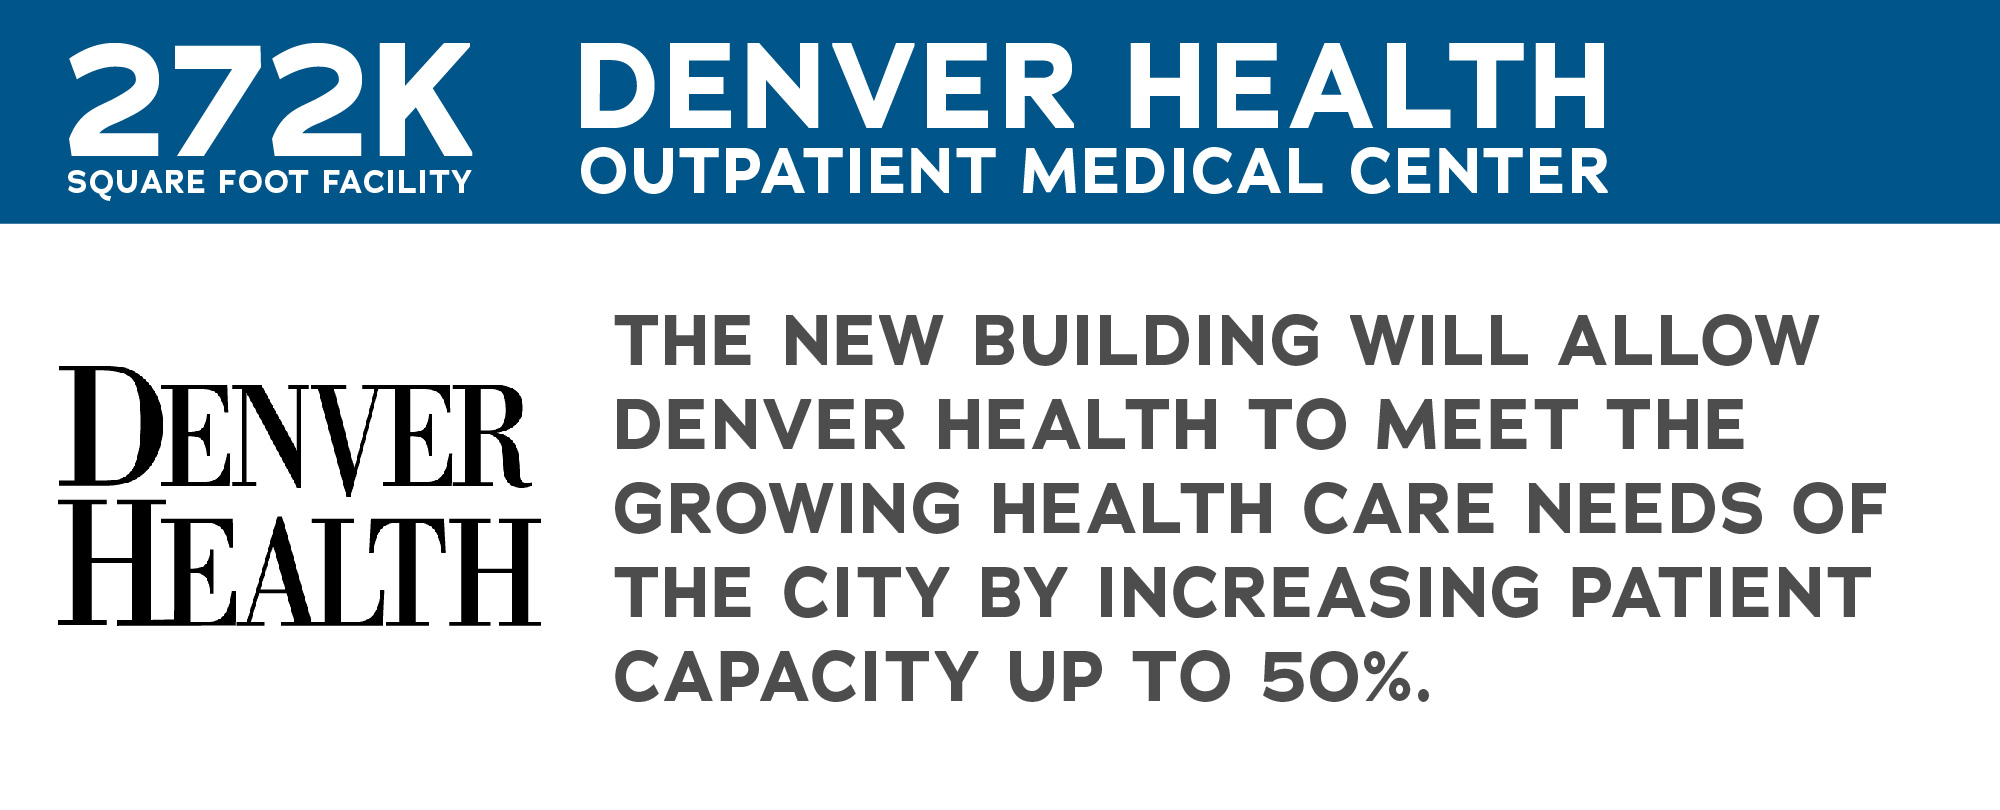 image showing denver health logo and information about denver health projects